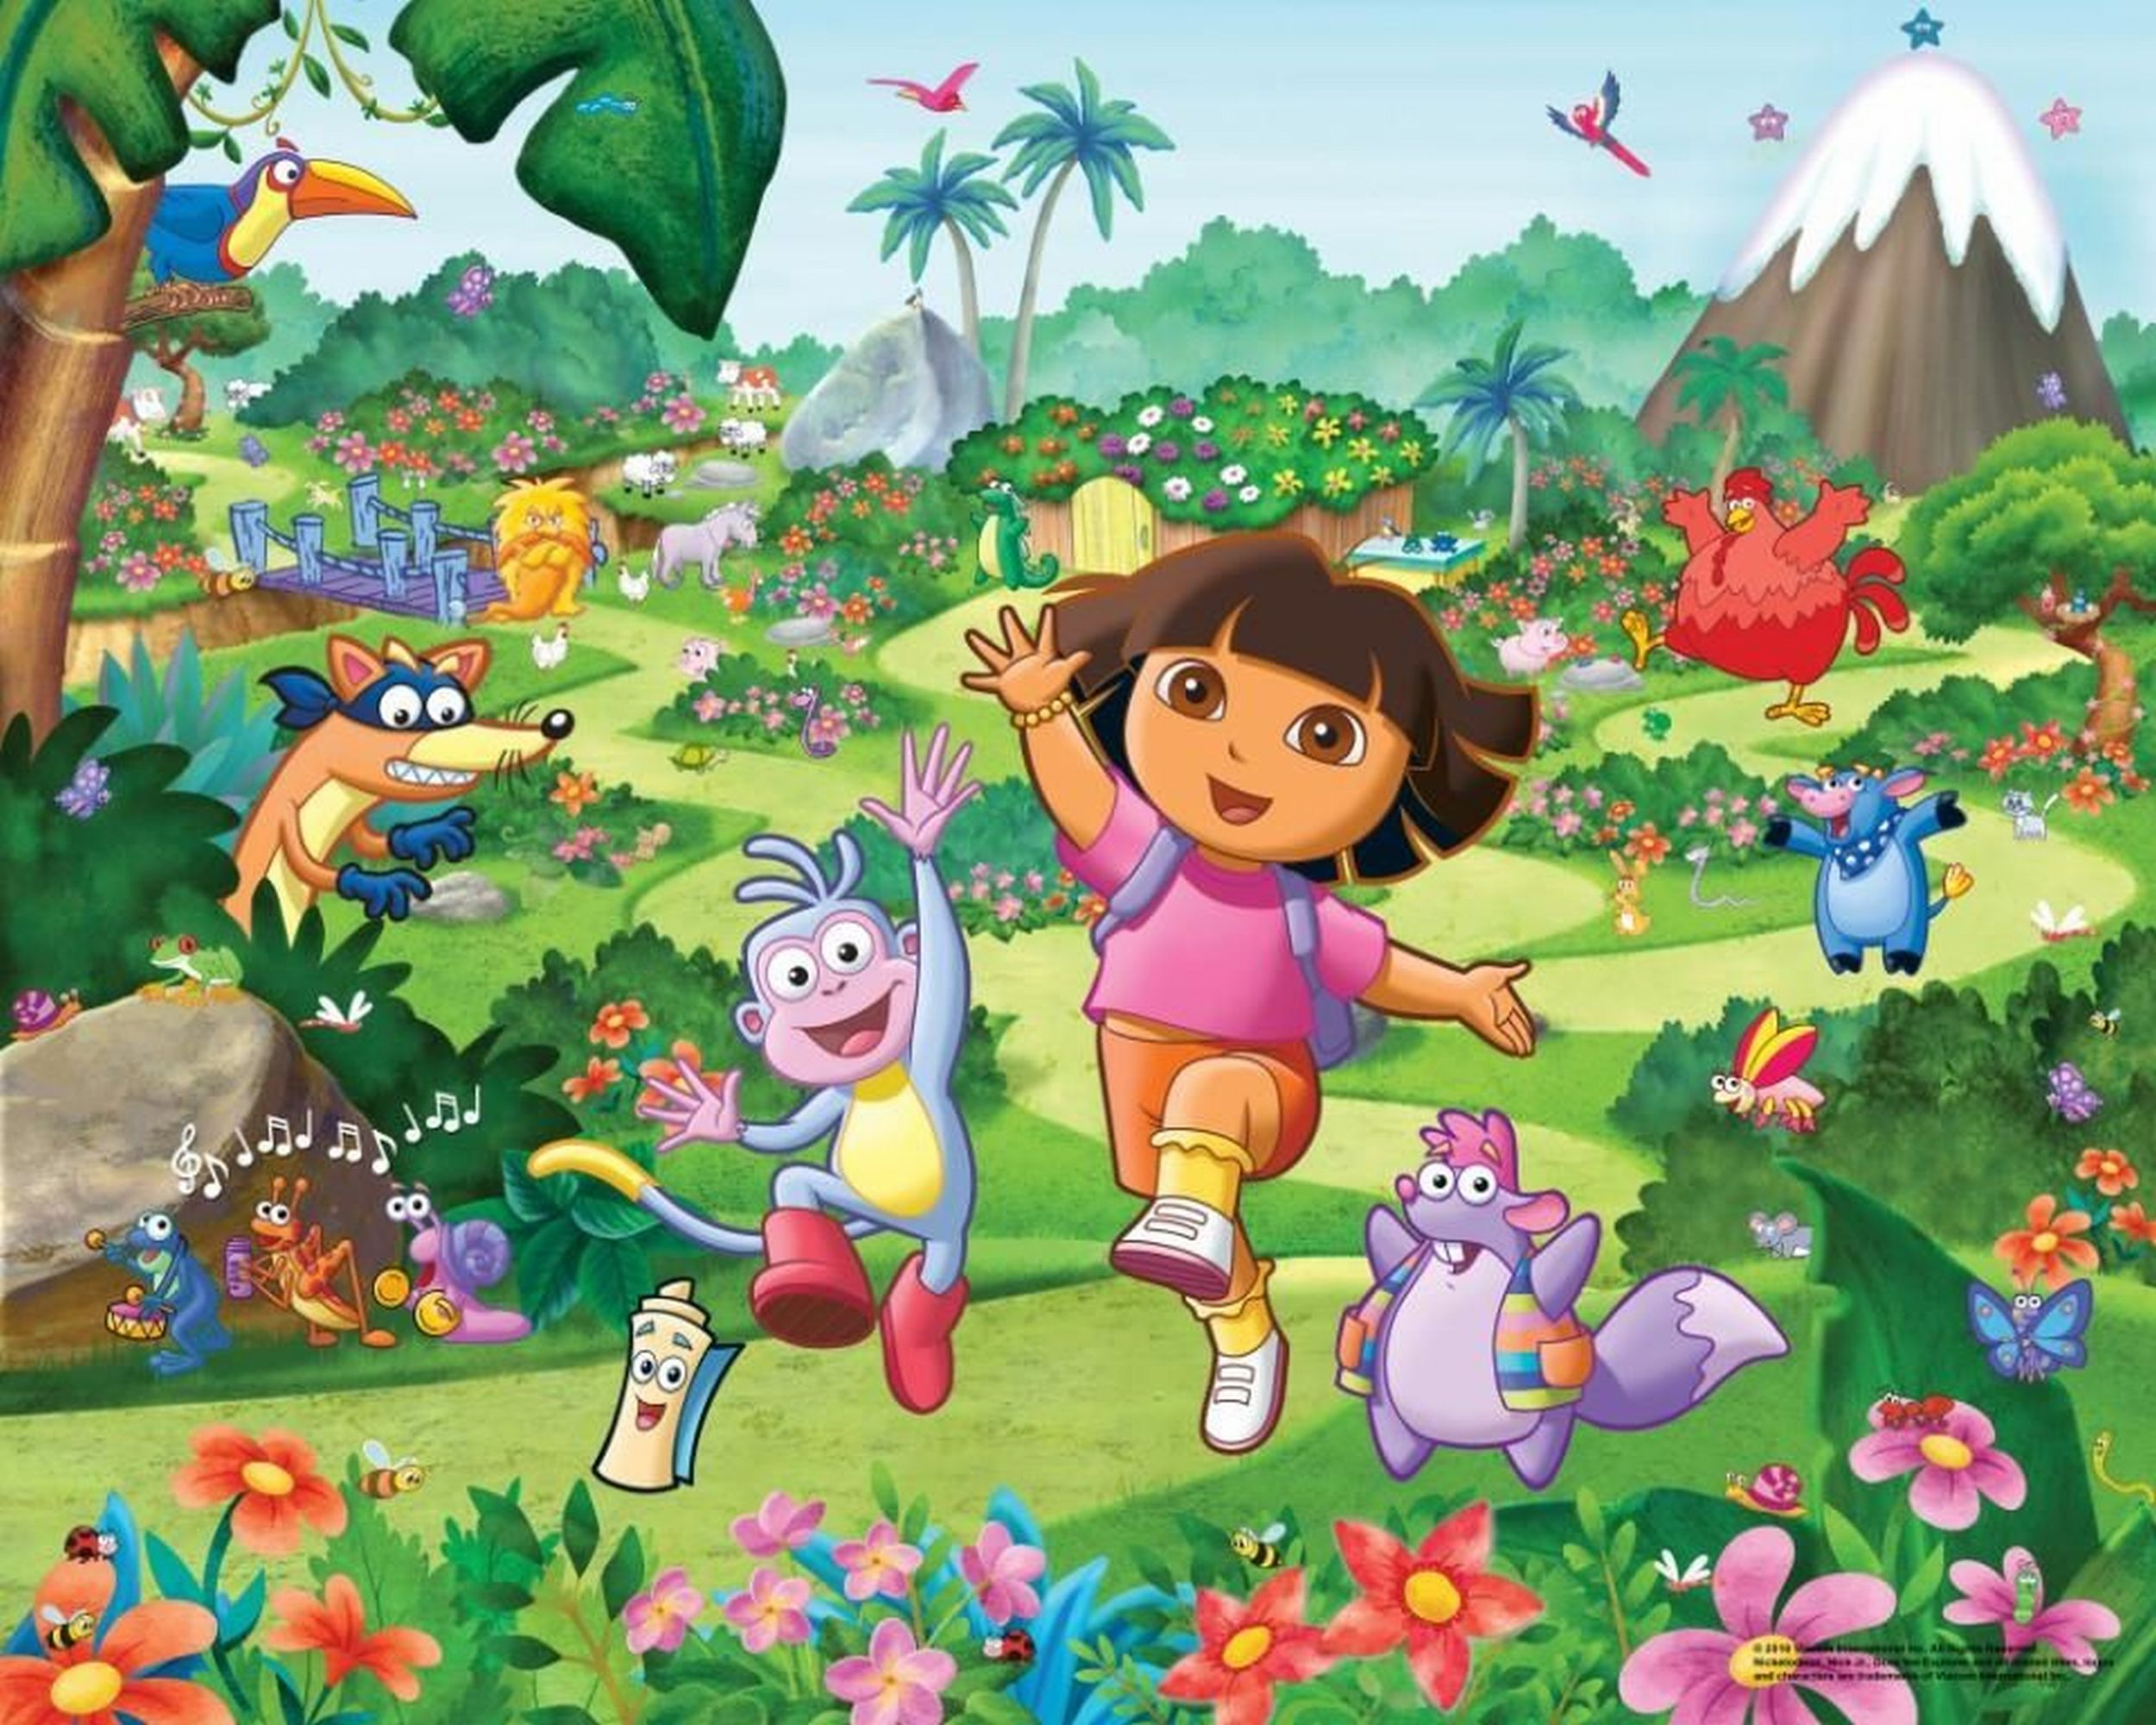 Wallpaper dora backgrounds for desktop pic wpb008967 download voltagebd Image collections